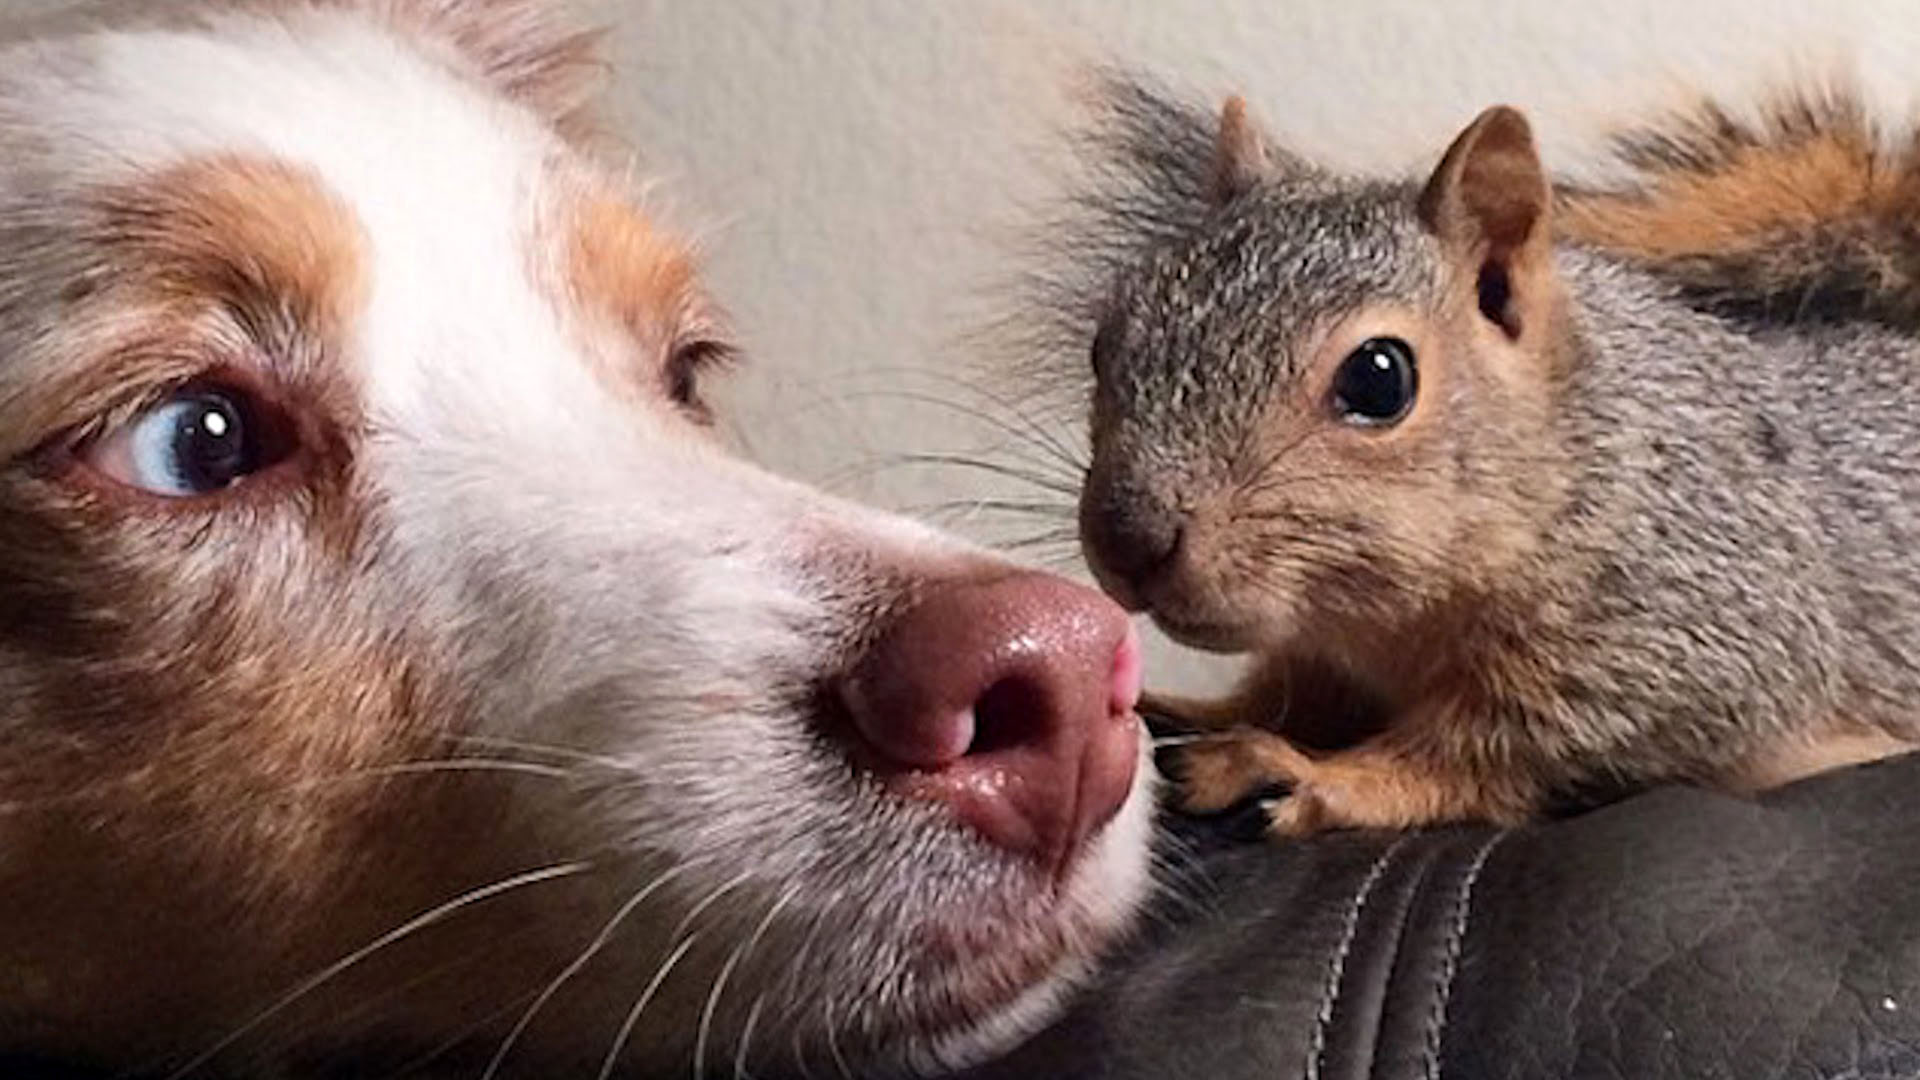 Dog and Squirel